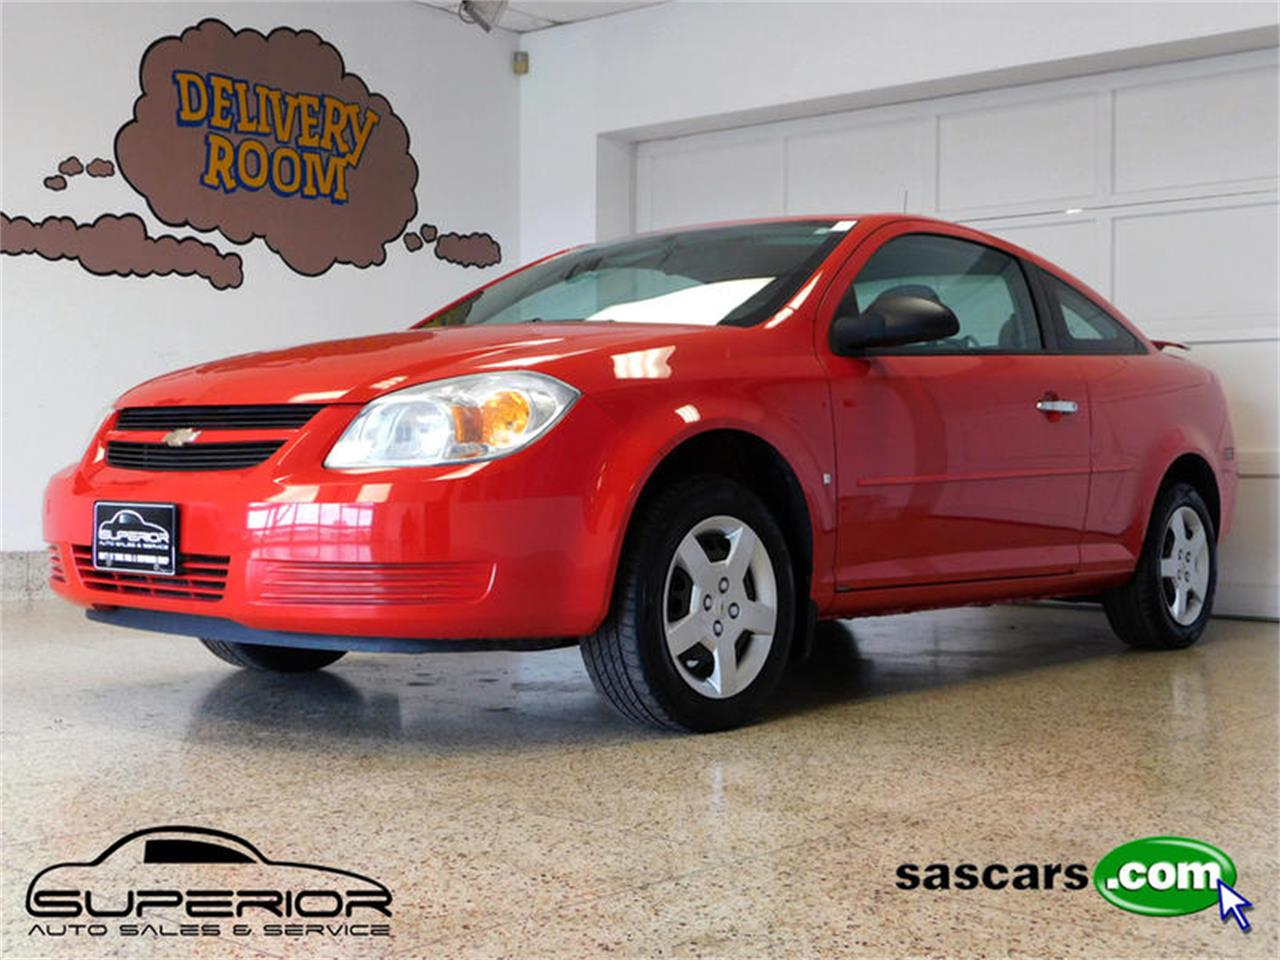 Large Picture of 2007 Chevrolet Cobalt located in New York - $3,999.00 - QEMW